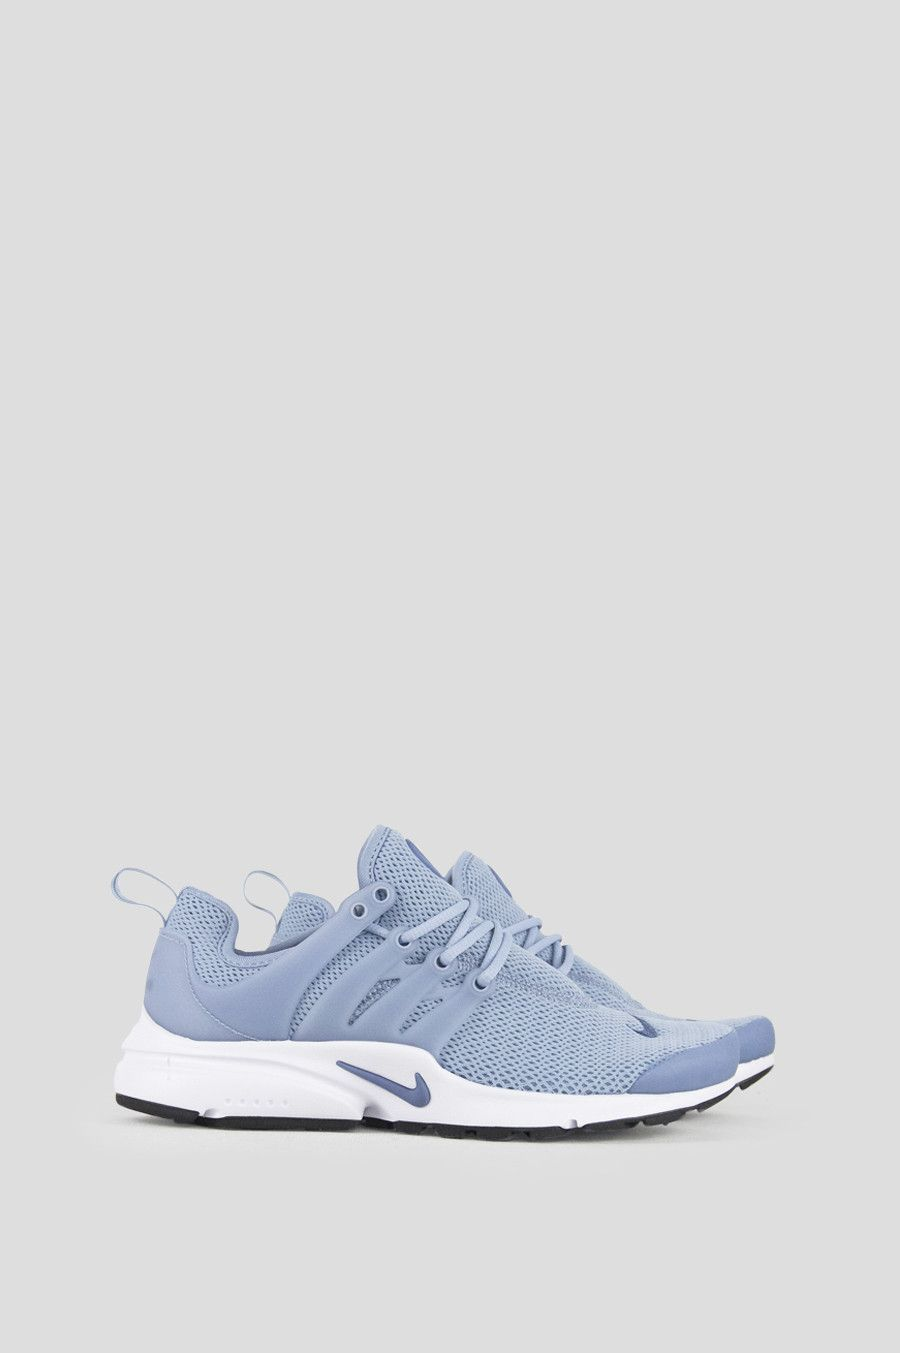 NIKE WOMENS AIR PRESTO BLUE GREY OCEAN FOG BLACK